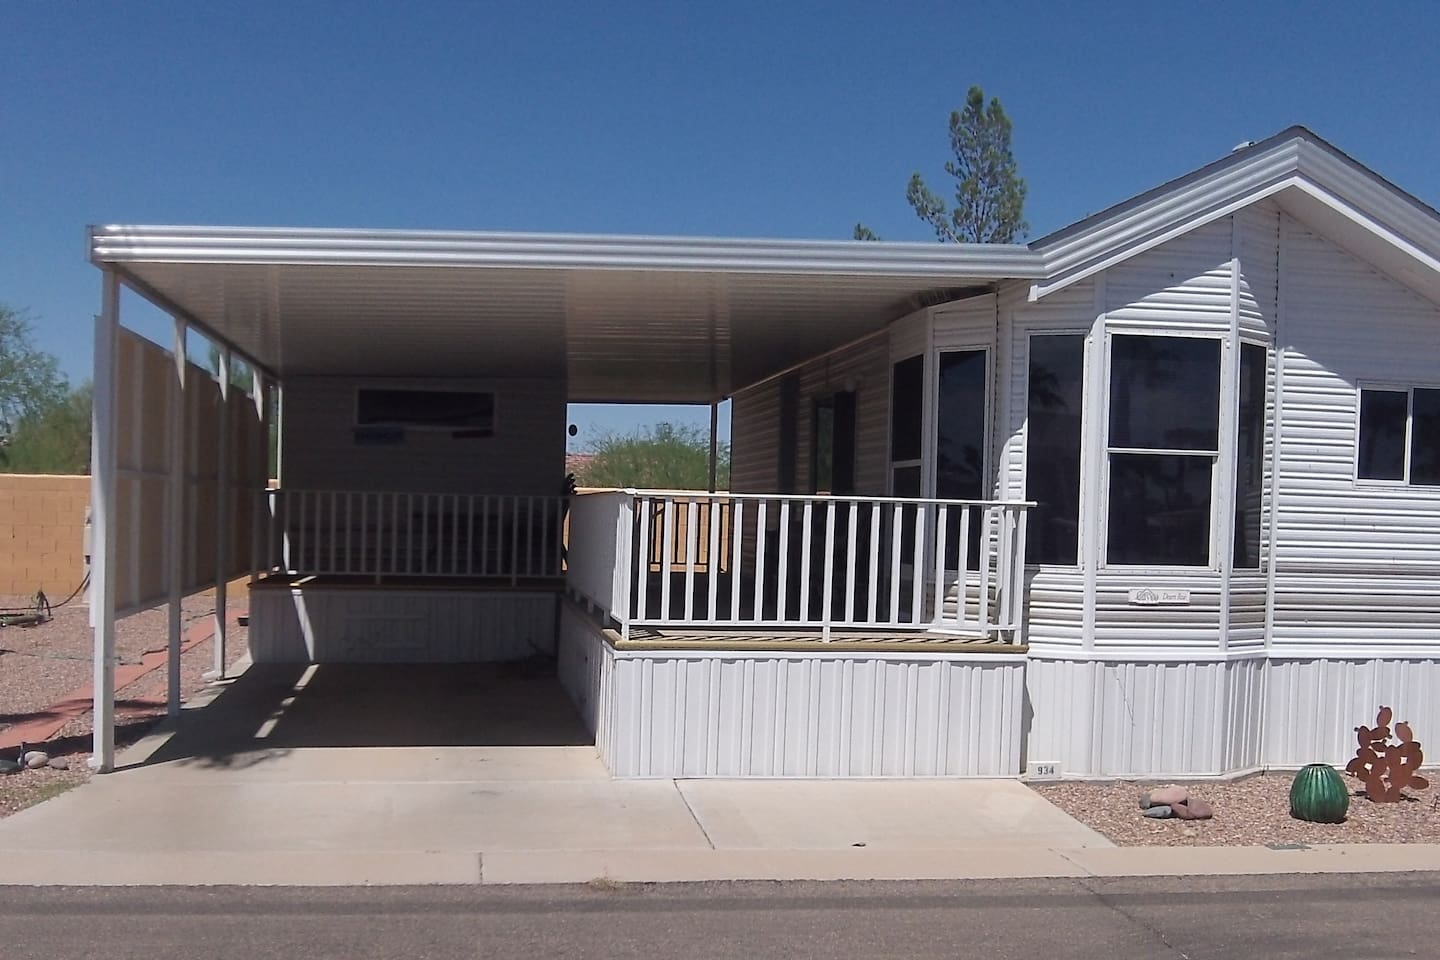 L-shaped deck, private patio at back.